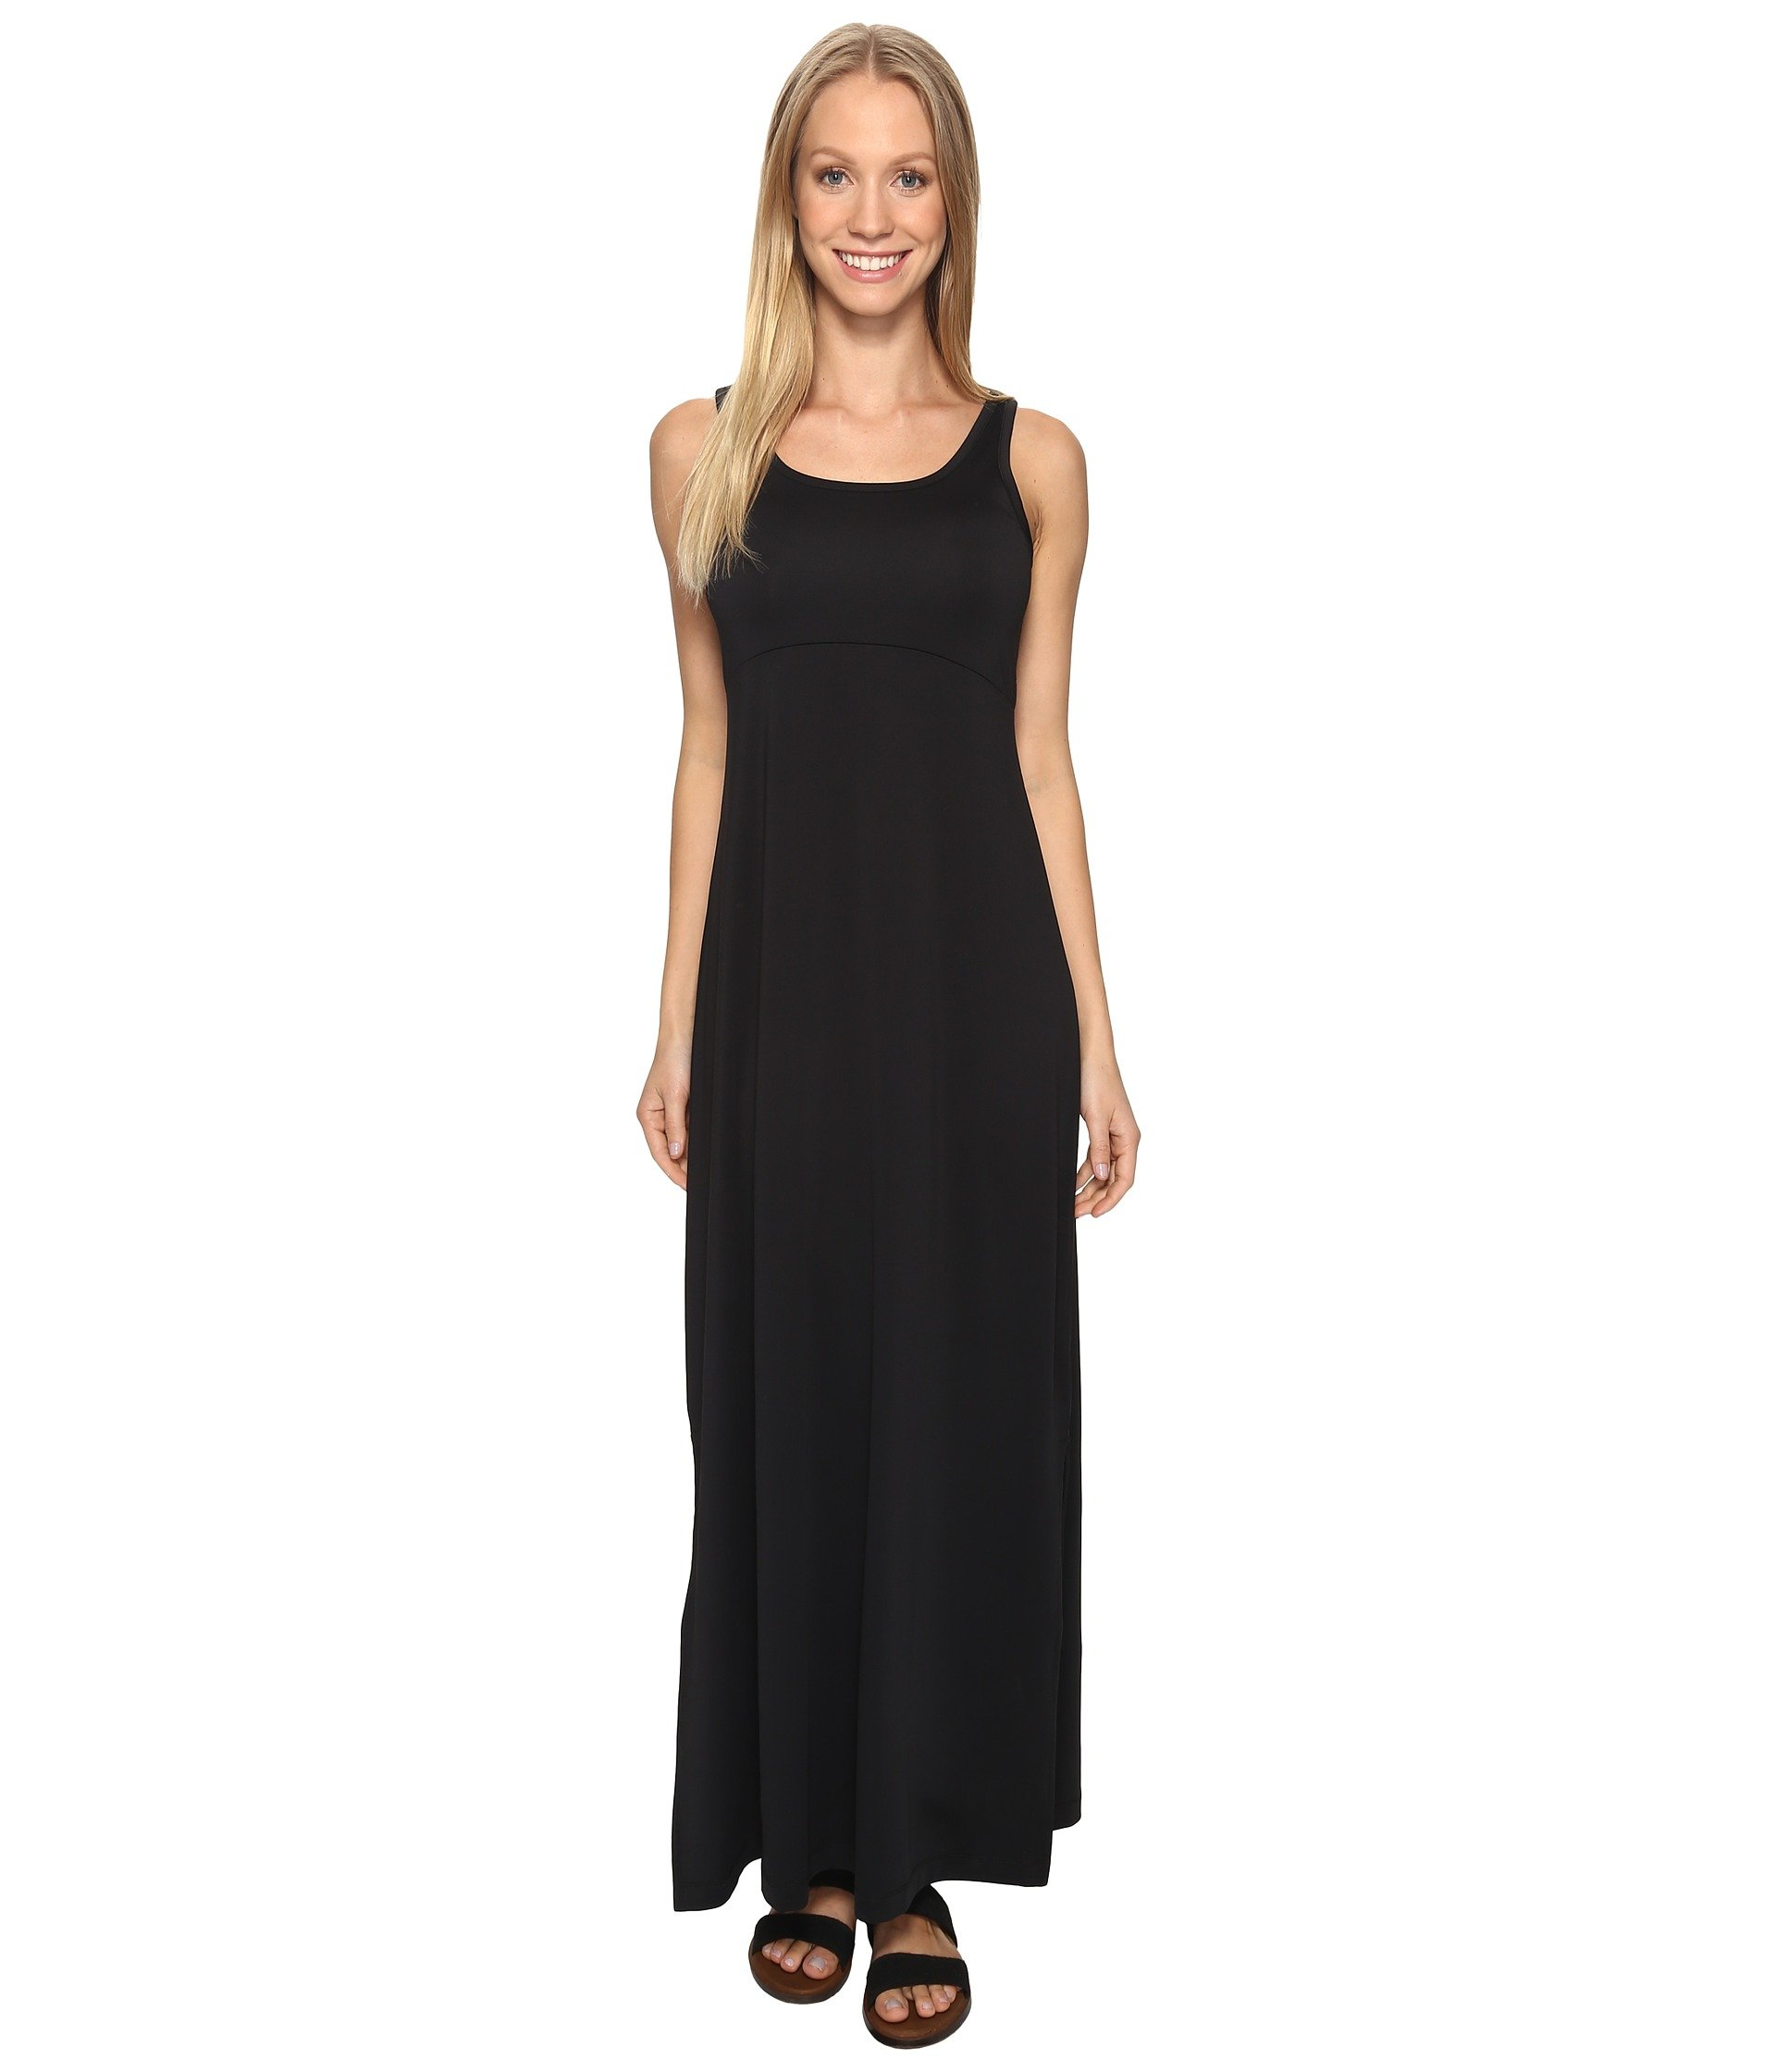 Columbia freezer maxi dress